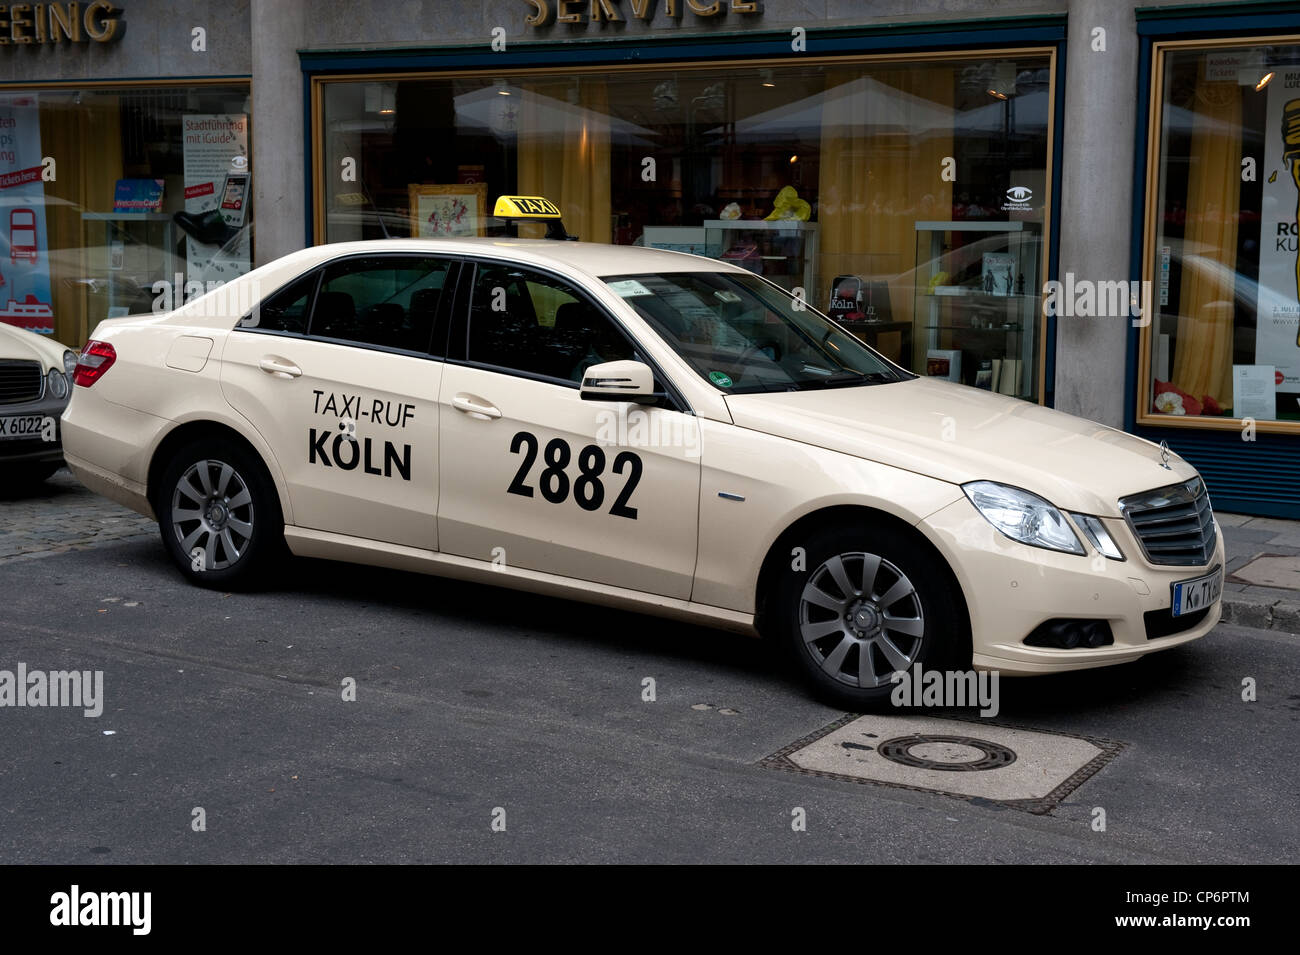 koln 2882 taxi cab mercedes car cologne germany europe eu. Black Bedroom Furniture Sets. Home Design Ideas